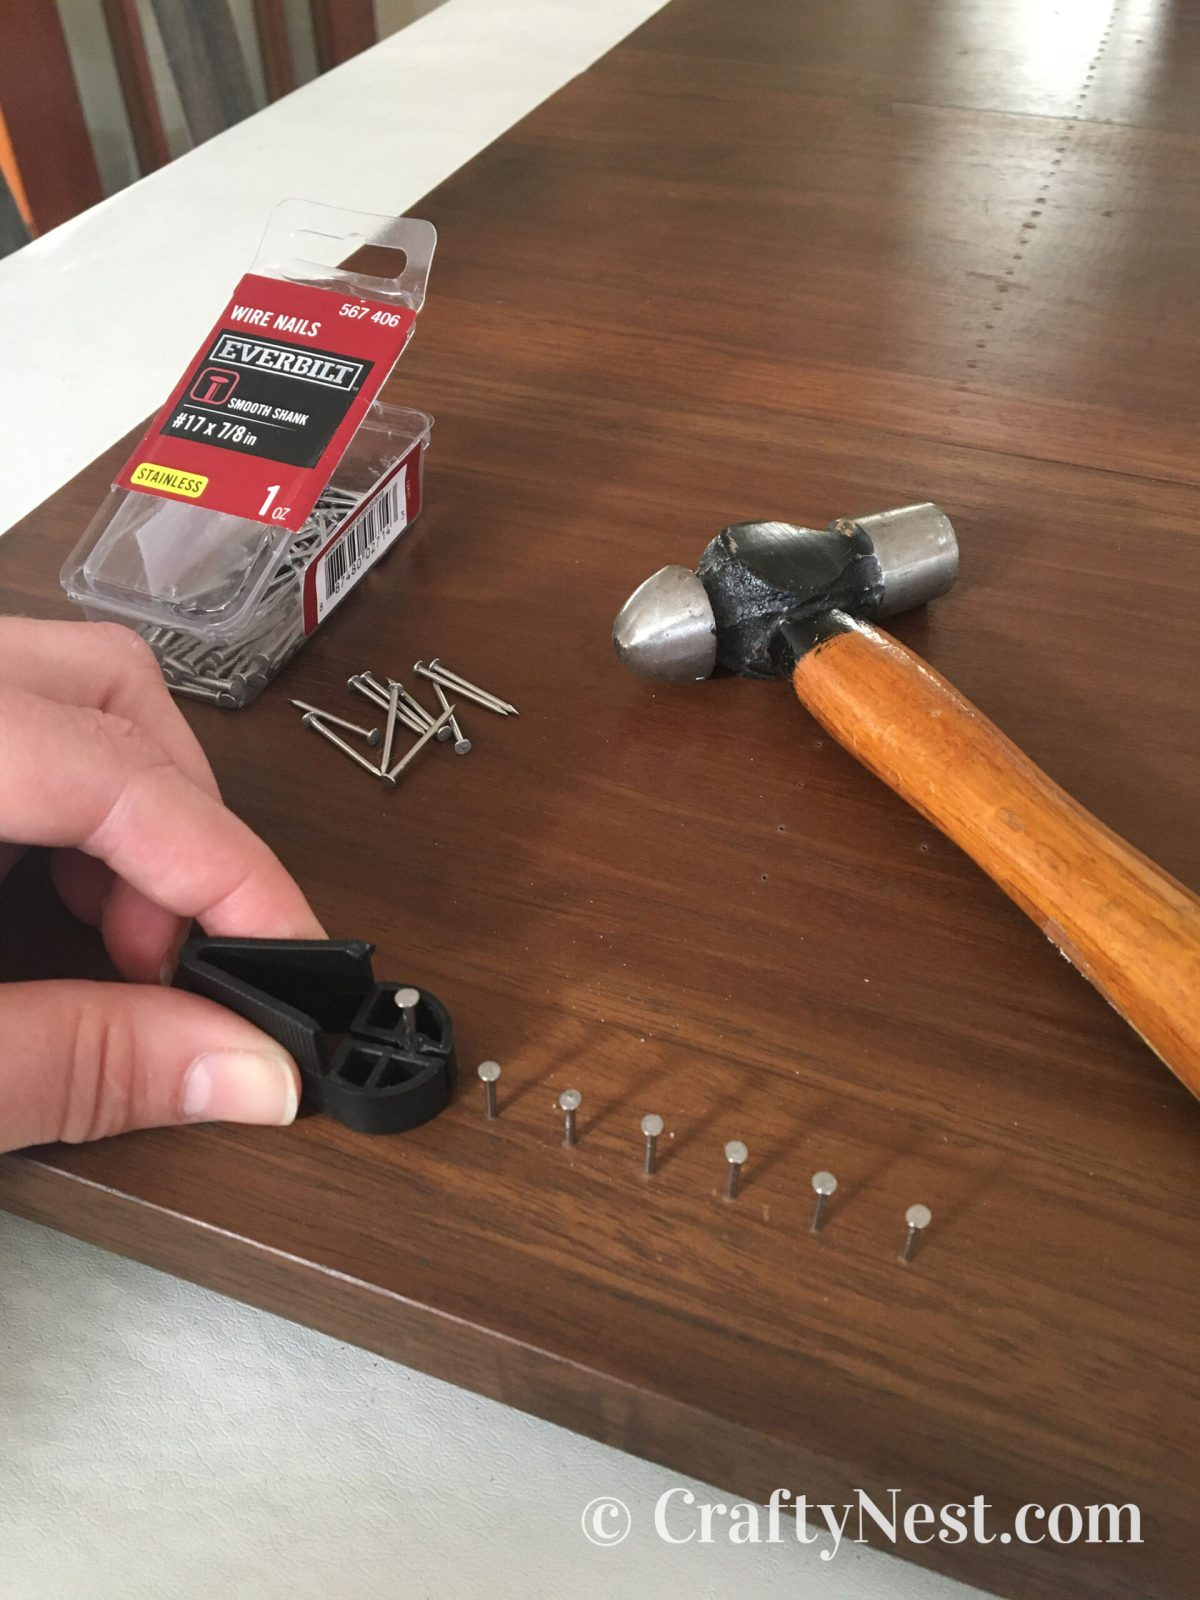 Hammering nails with nail holder, photo